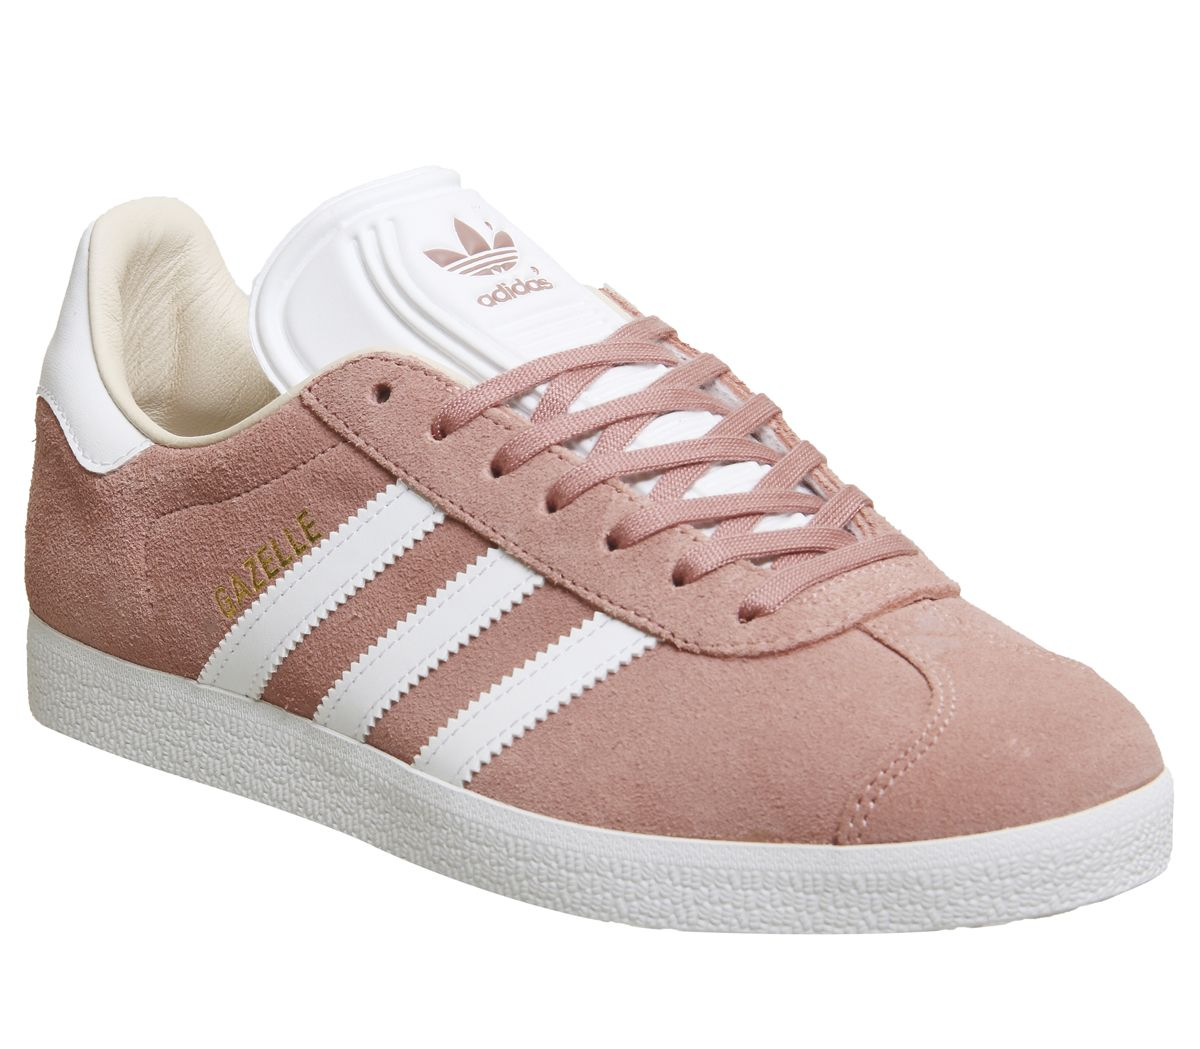 b0261ddca4c adidas Gazelle Trainers Ash Pearl White - Hers trainers